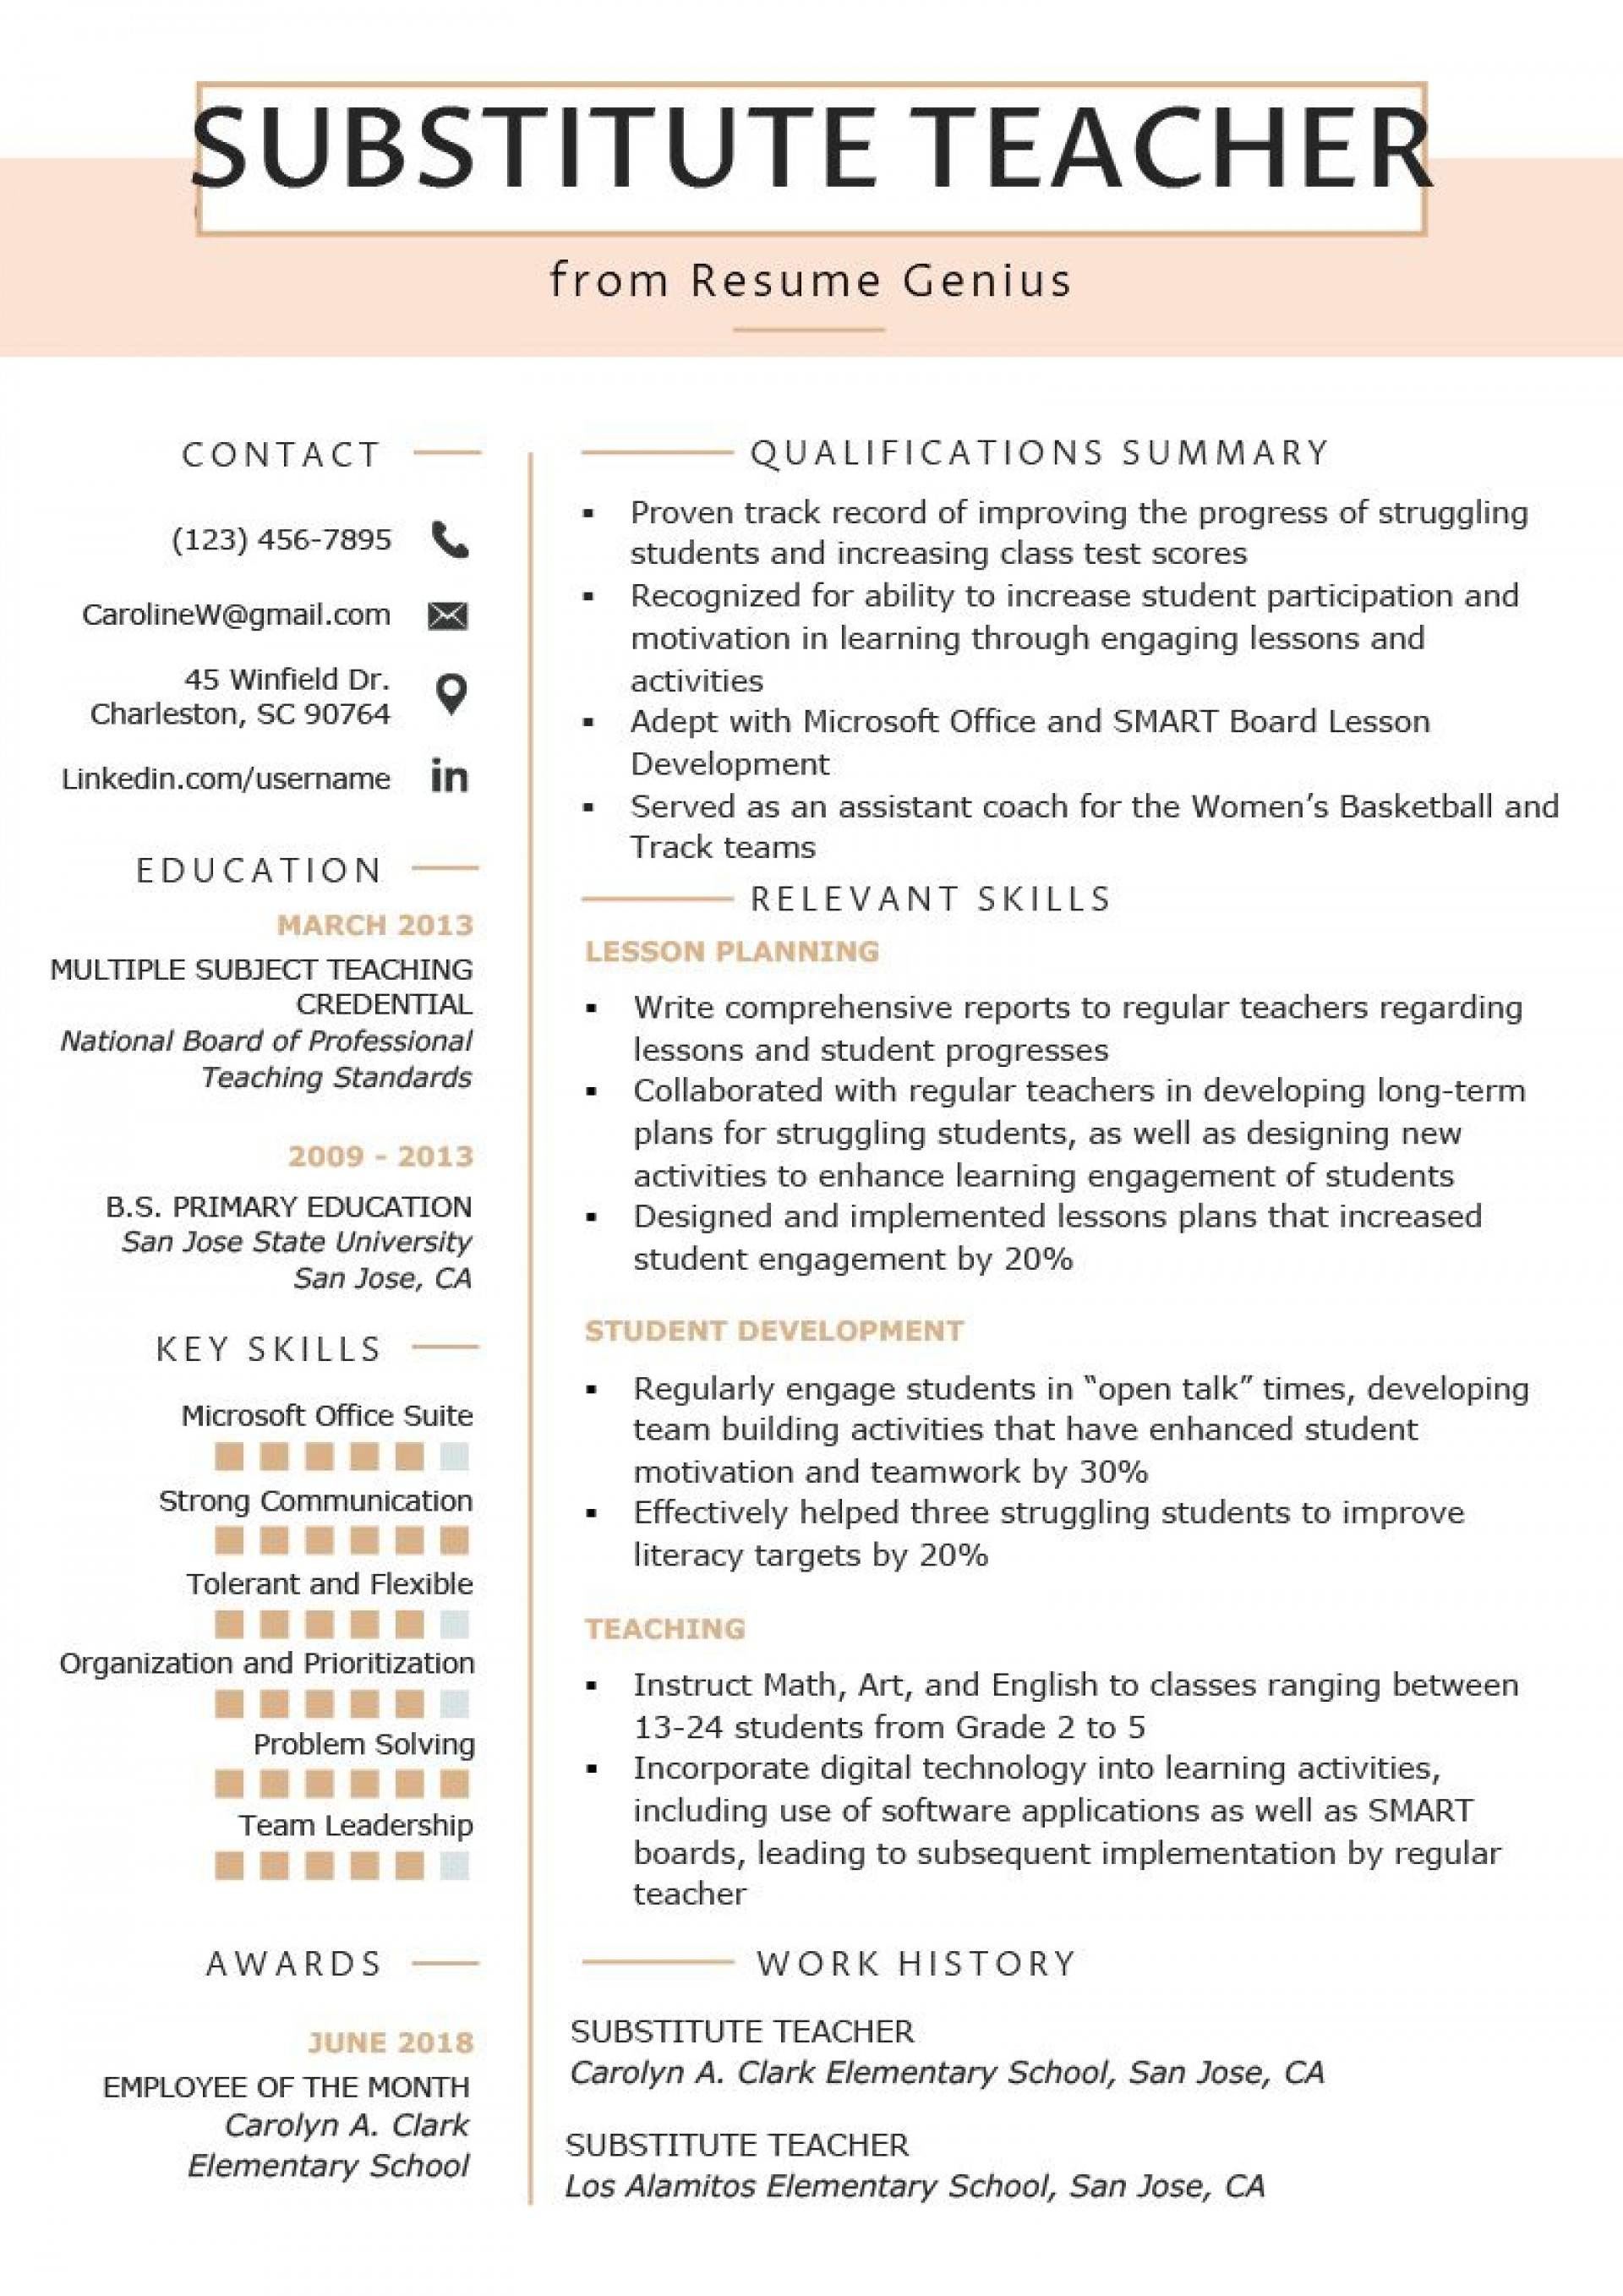 002 Stunning Resume Template For Teaching High Def  Sample Job Example Teacher Assistant In India1920